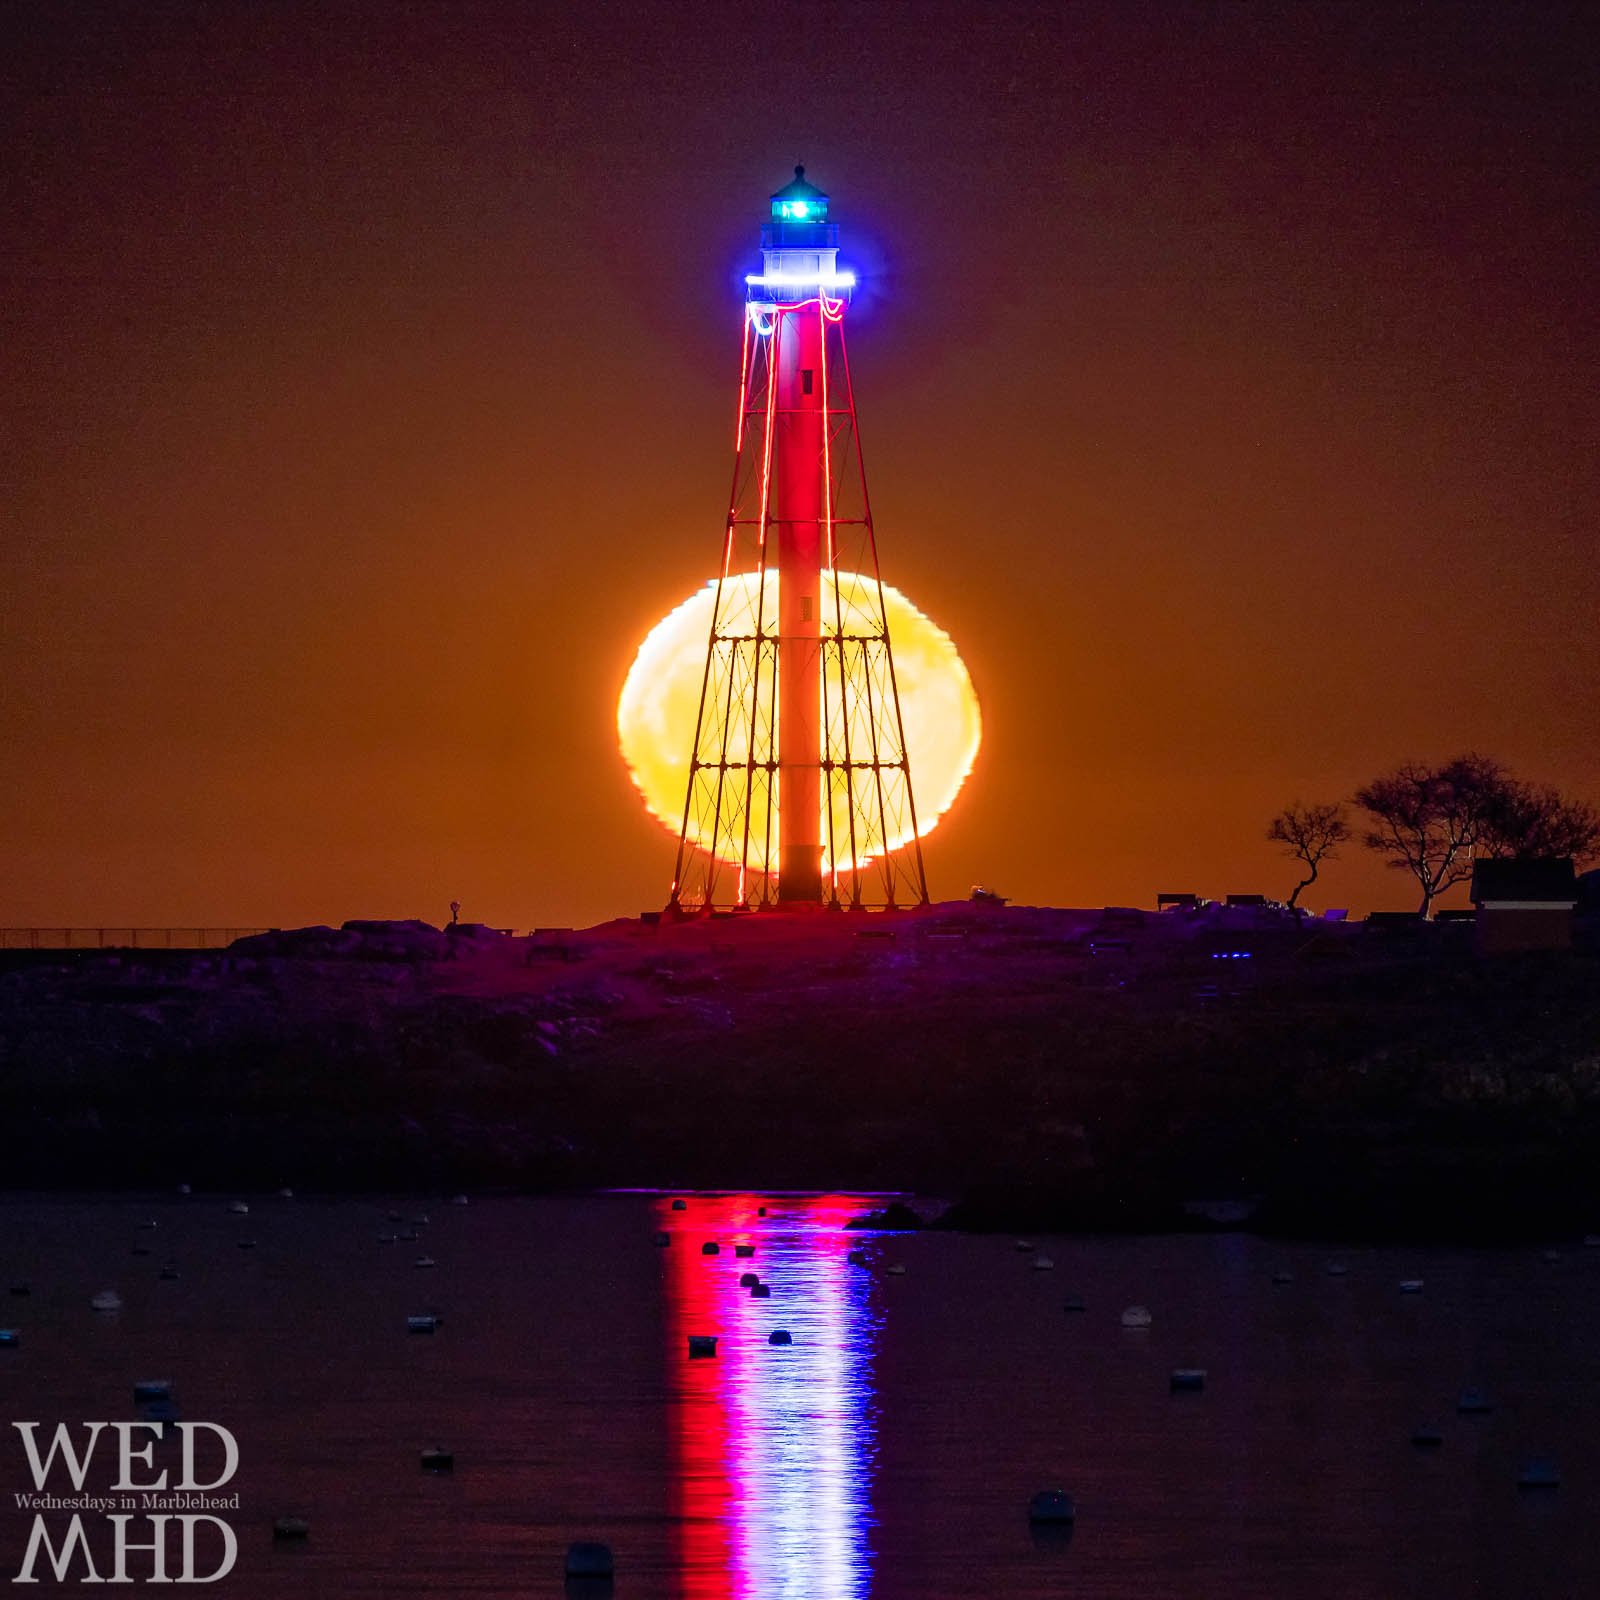 Marblehead light is backlit by moonglow in this long exposure image that captures the reflection of red, white and blue lights in the water below